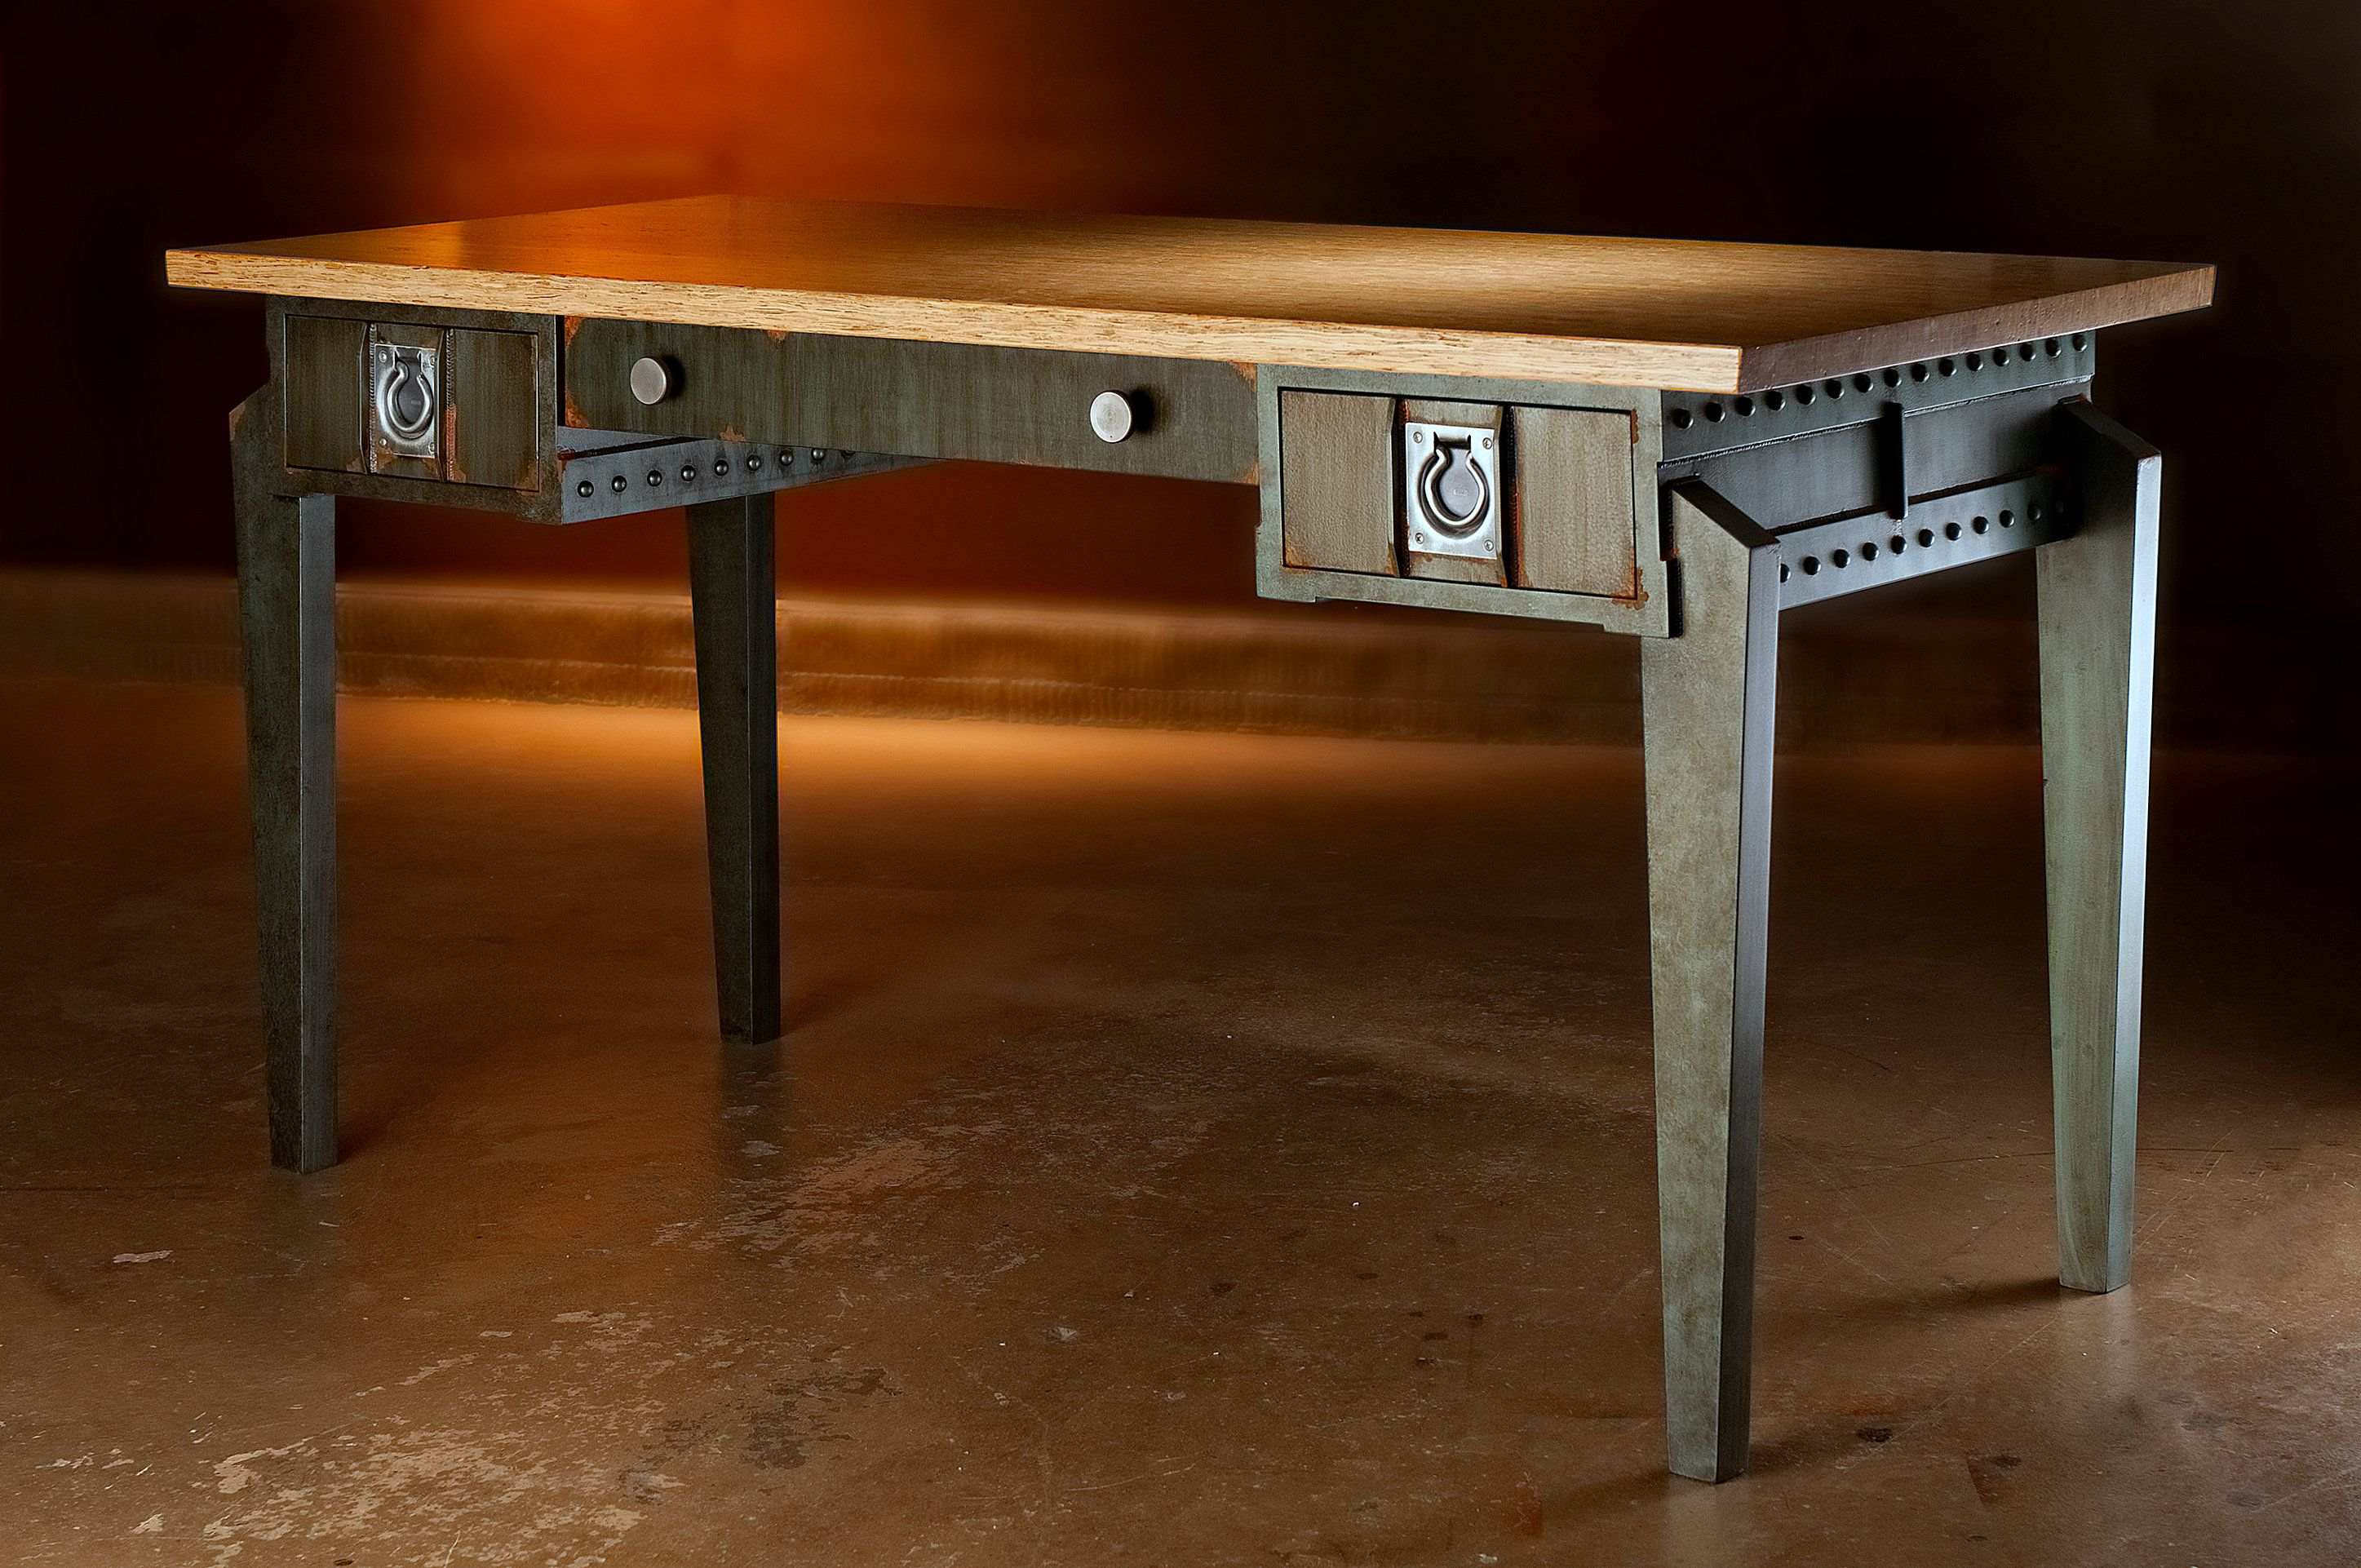 Loose cannon office desk industrial modern style for the home or office overall dimensions 60 wide 30 high and 30 deep